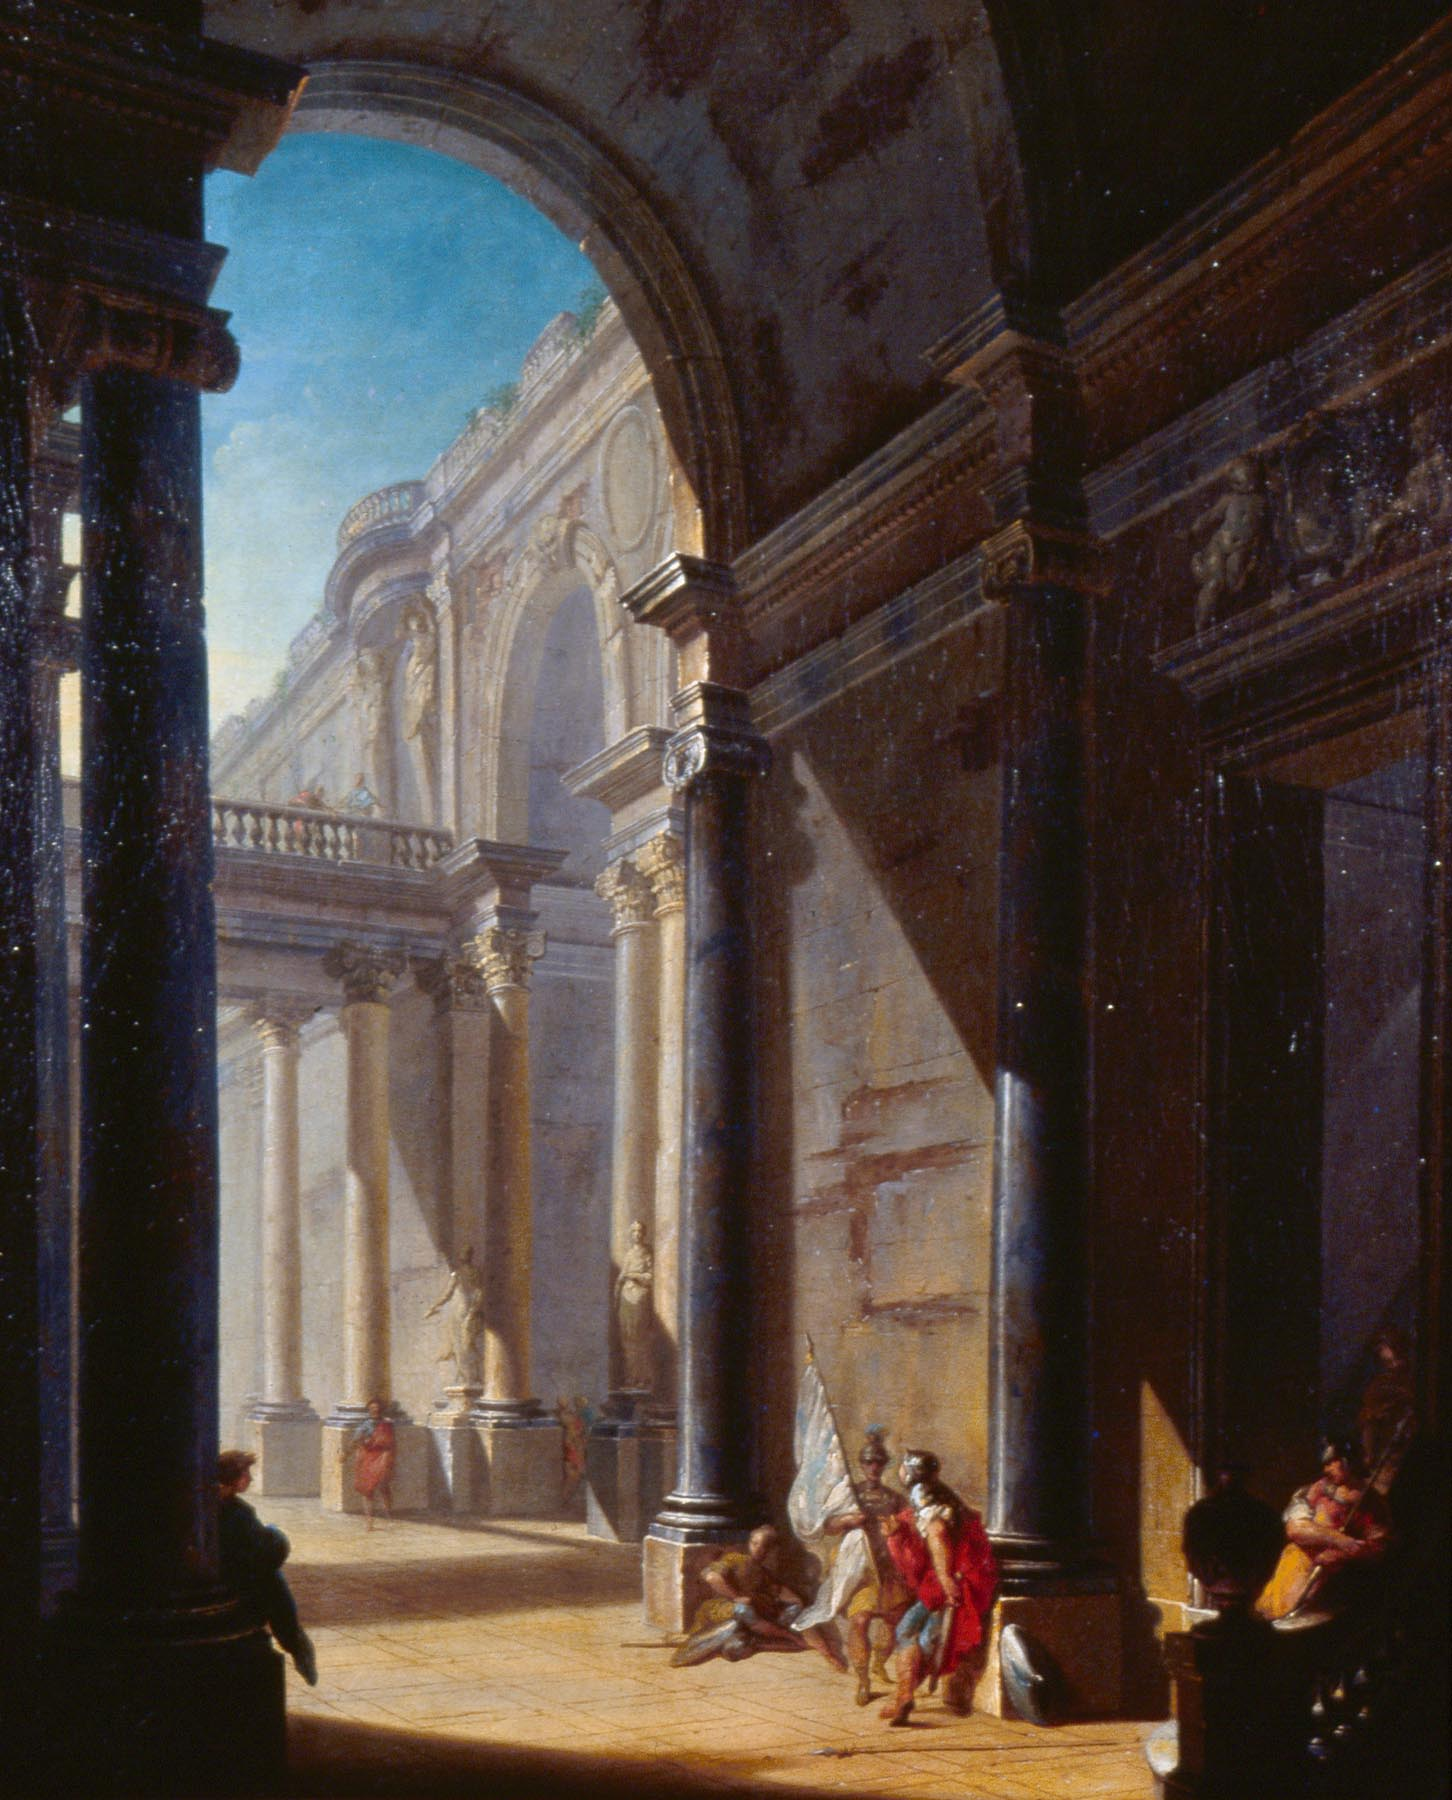 Attributed Girolamo Mengozzi, Architectural Fantasy with Figures, ca. 1750. Oil on canvas 34 3/8 x 28 in. Milwaukee Art Museum, Gift of Mr. and Mrs. Myron Laskin, M1982.37. Photo by P. Richard Eels.